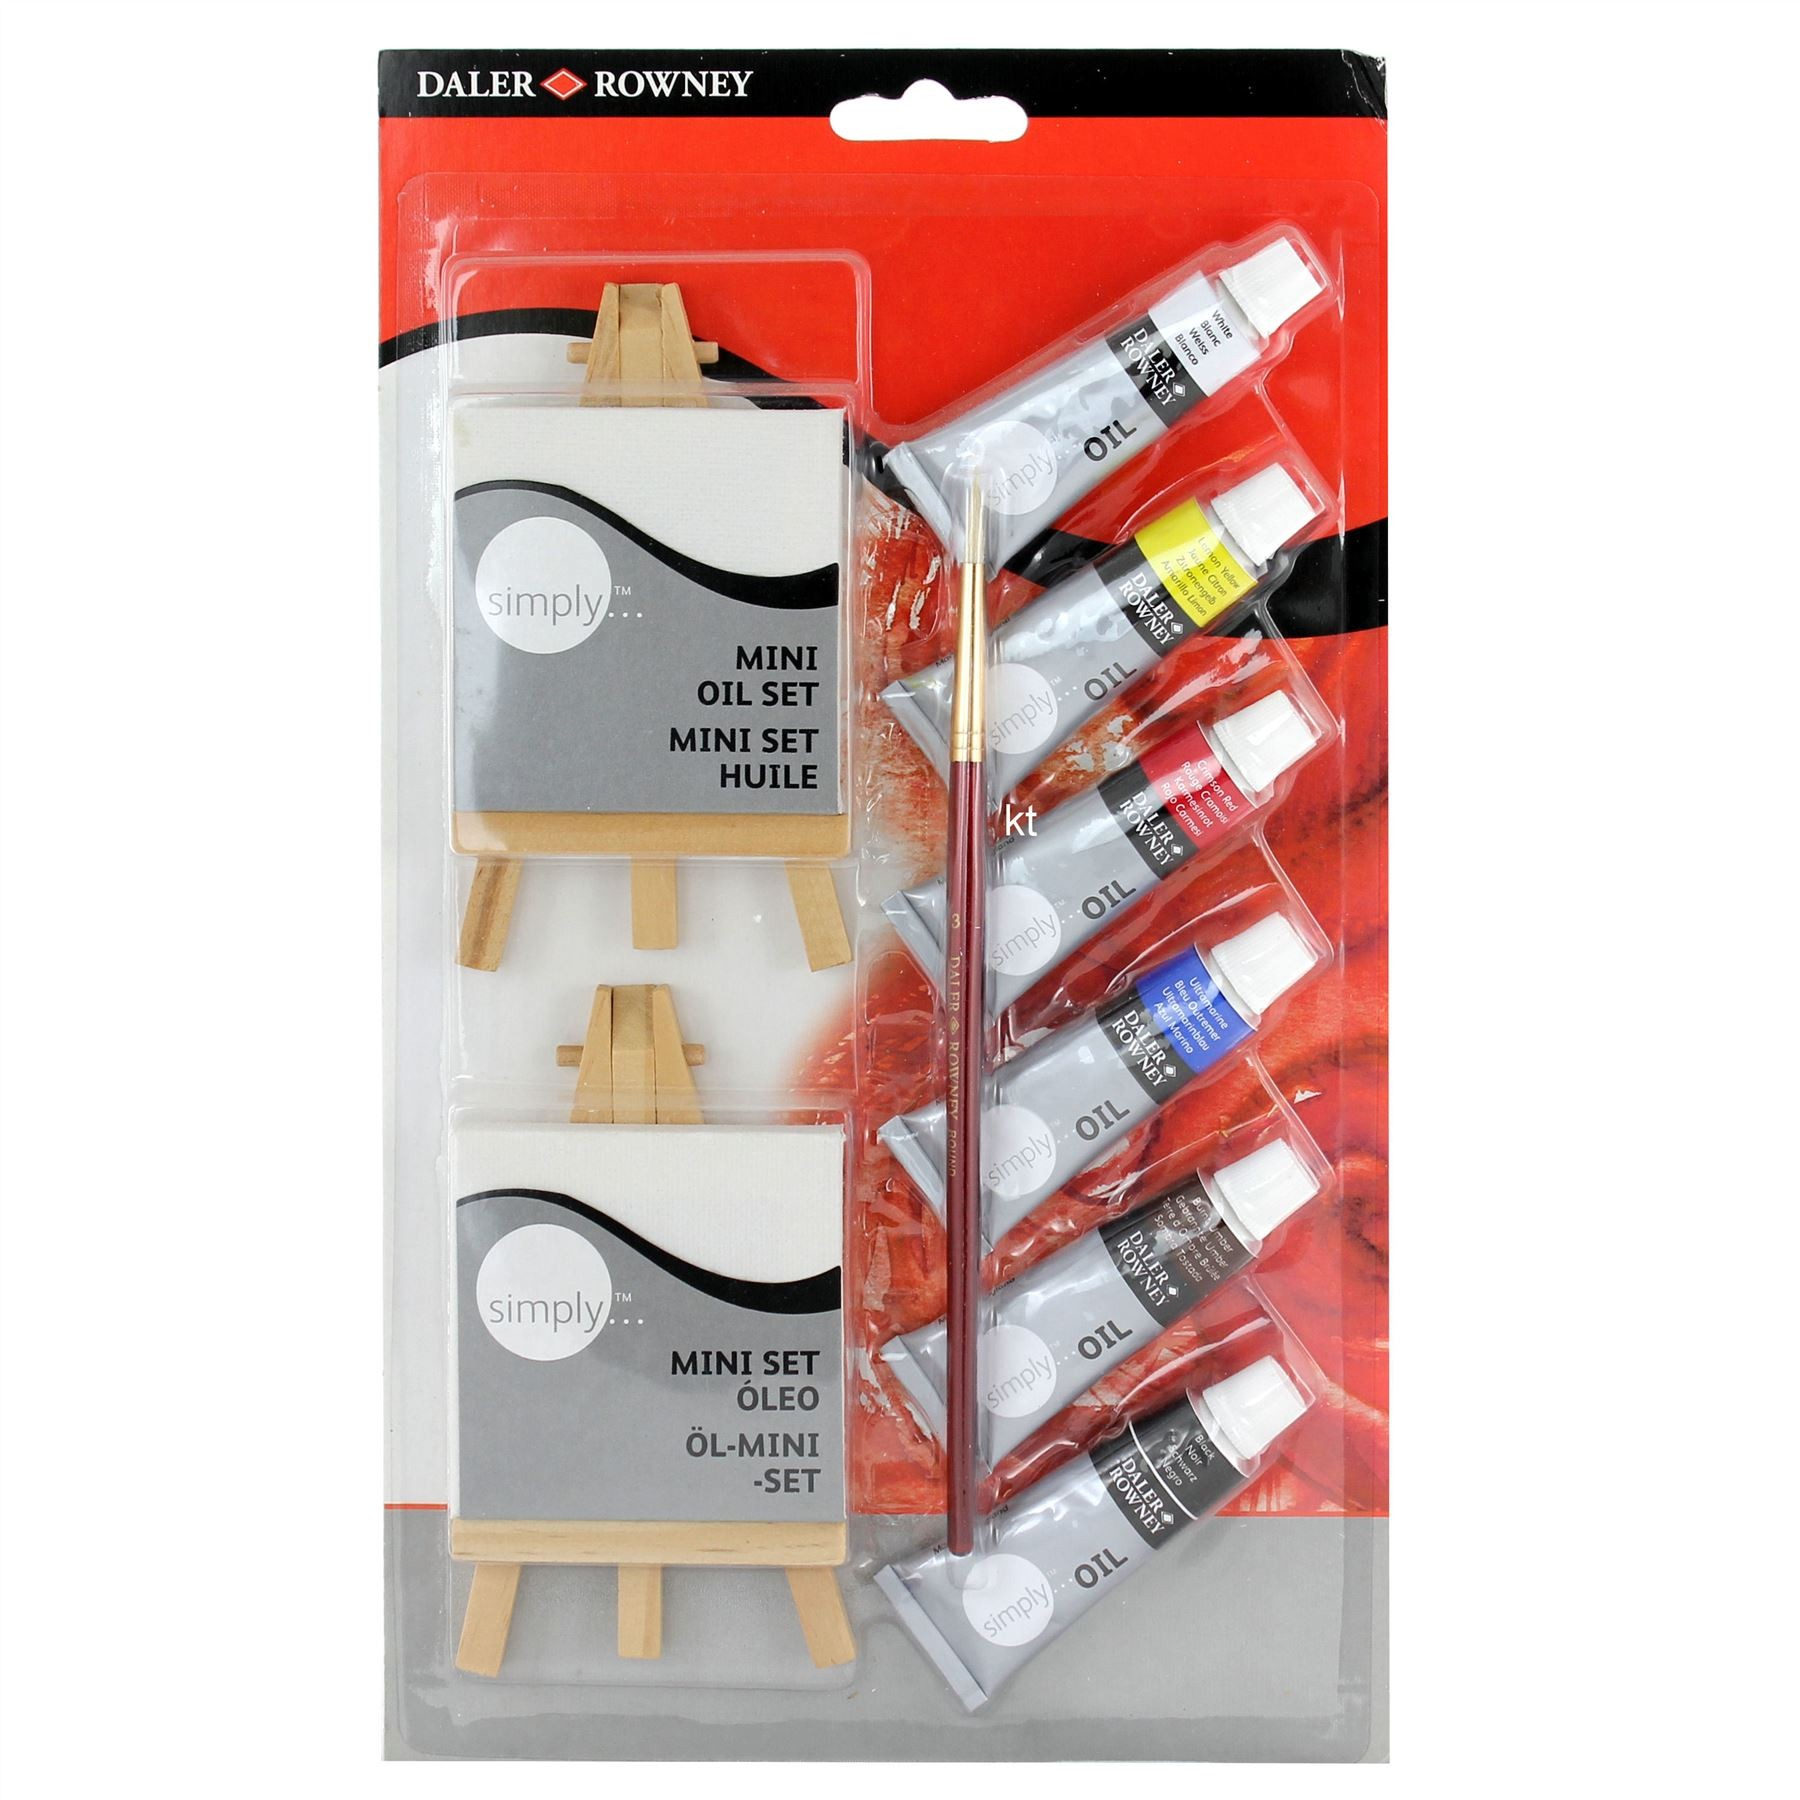 Daler Rowney Mini Oil Set - Paints Brushes Easel